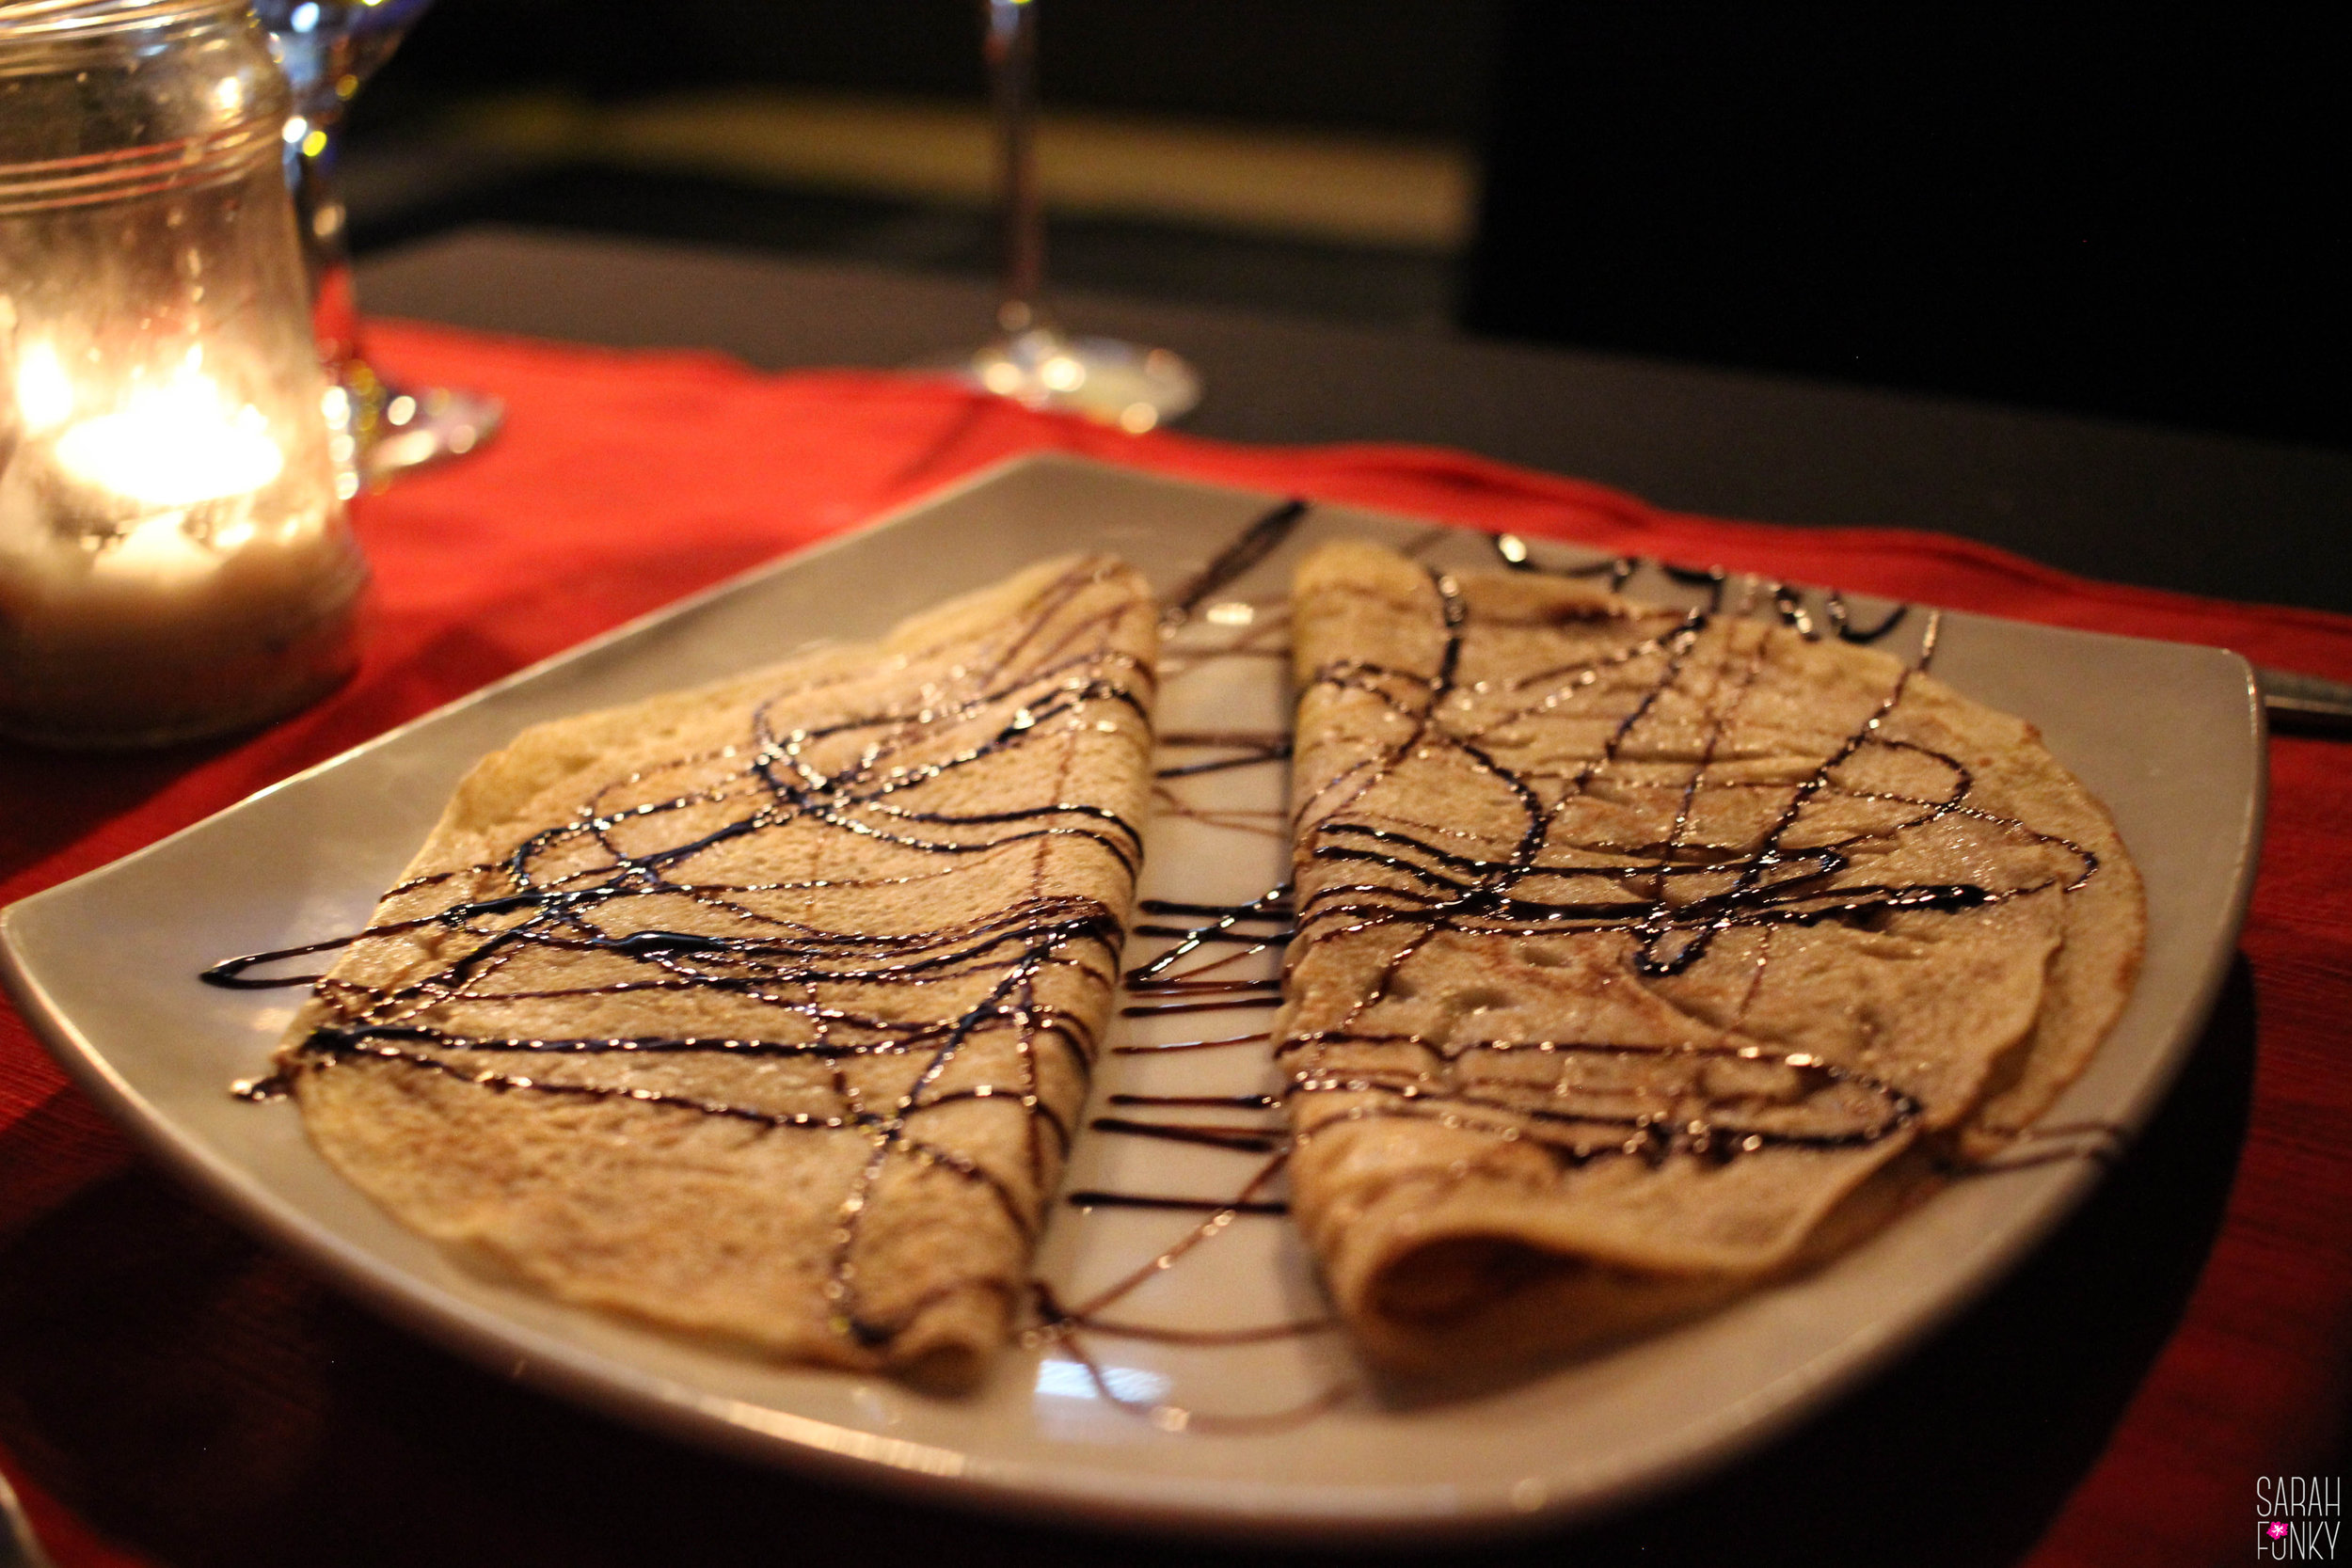 Dessert is served, a sweet chocolate crepe.